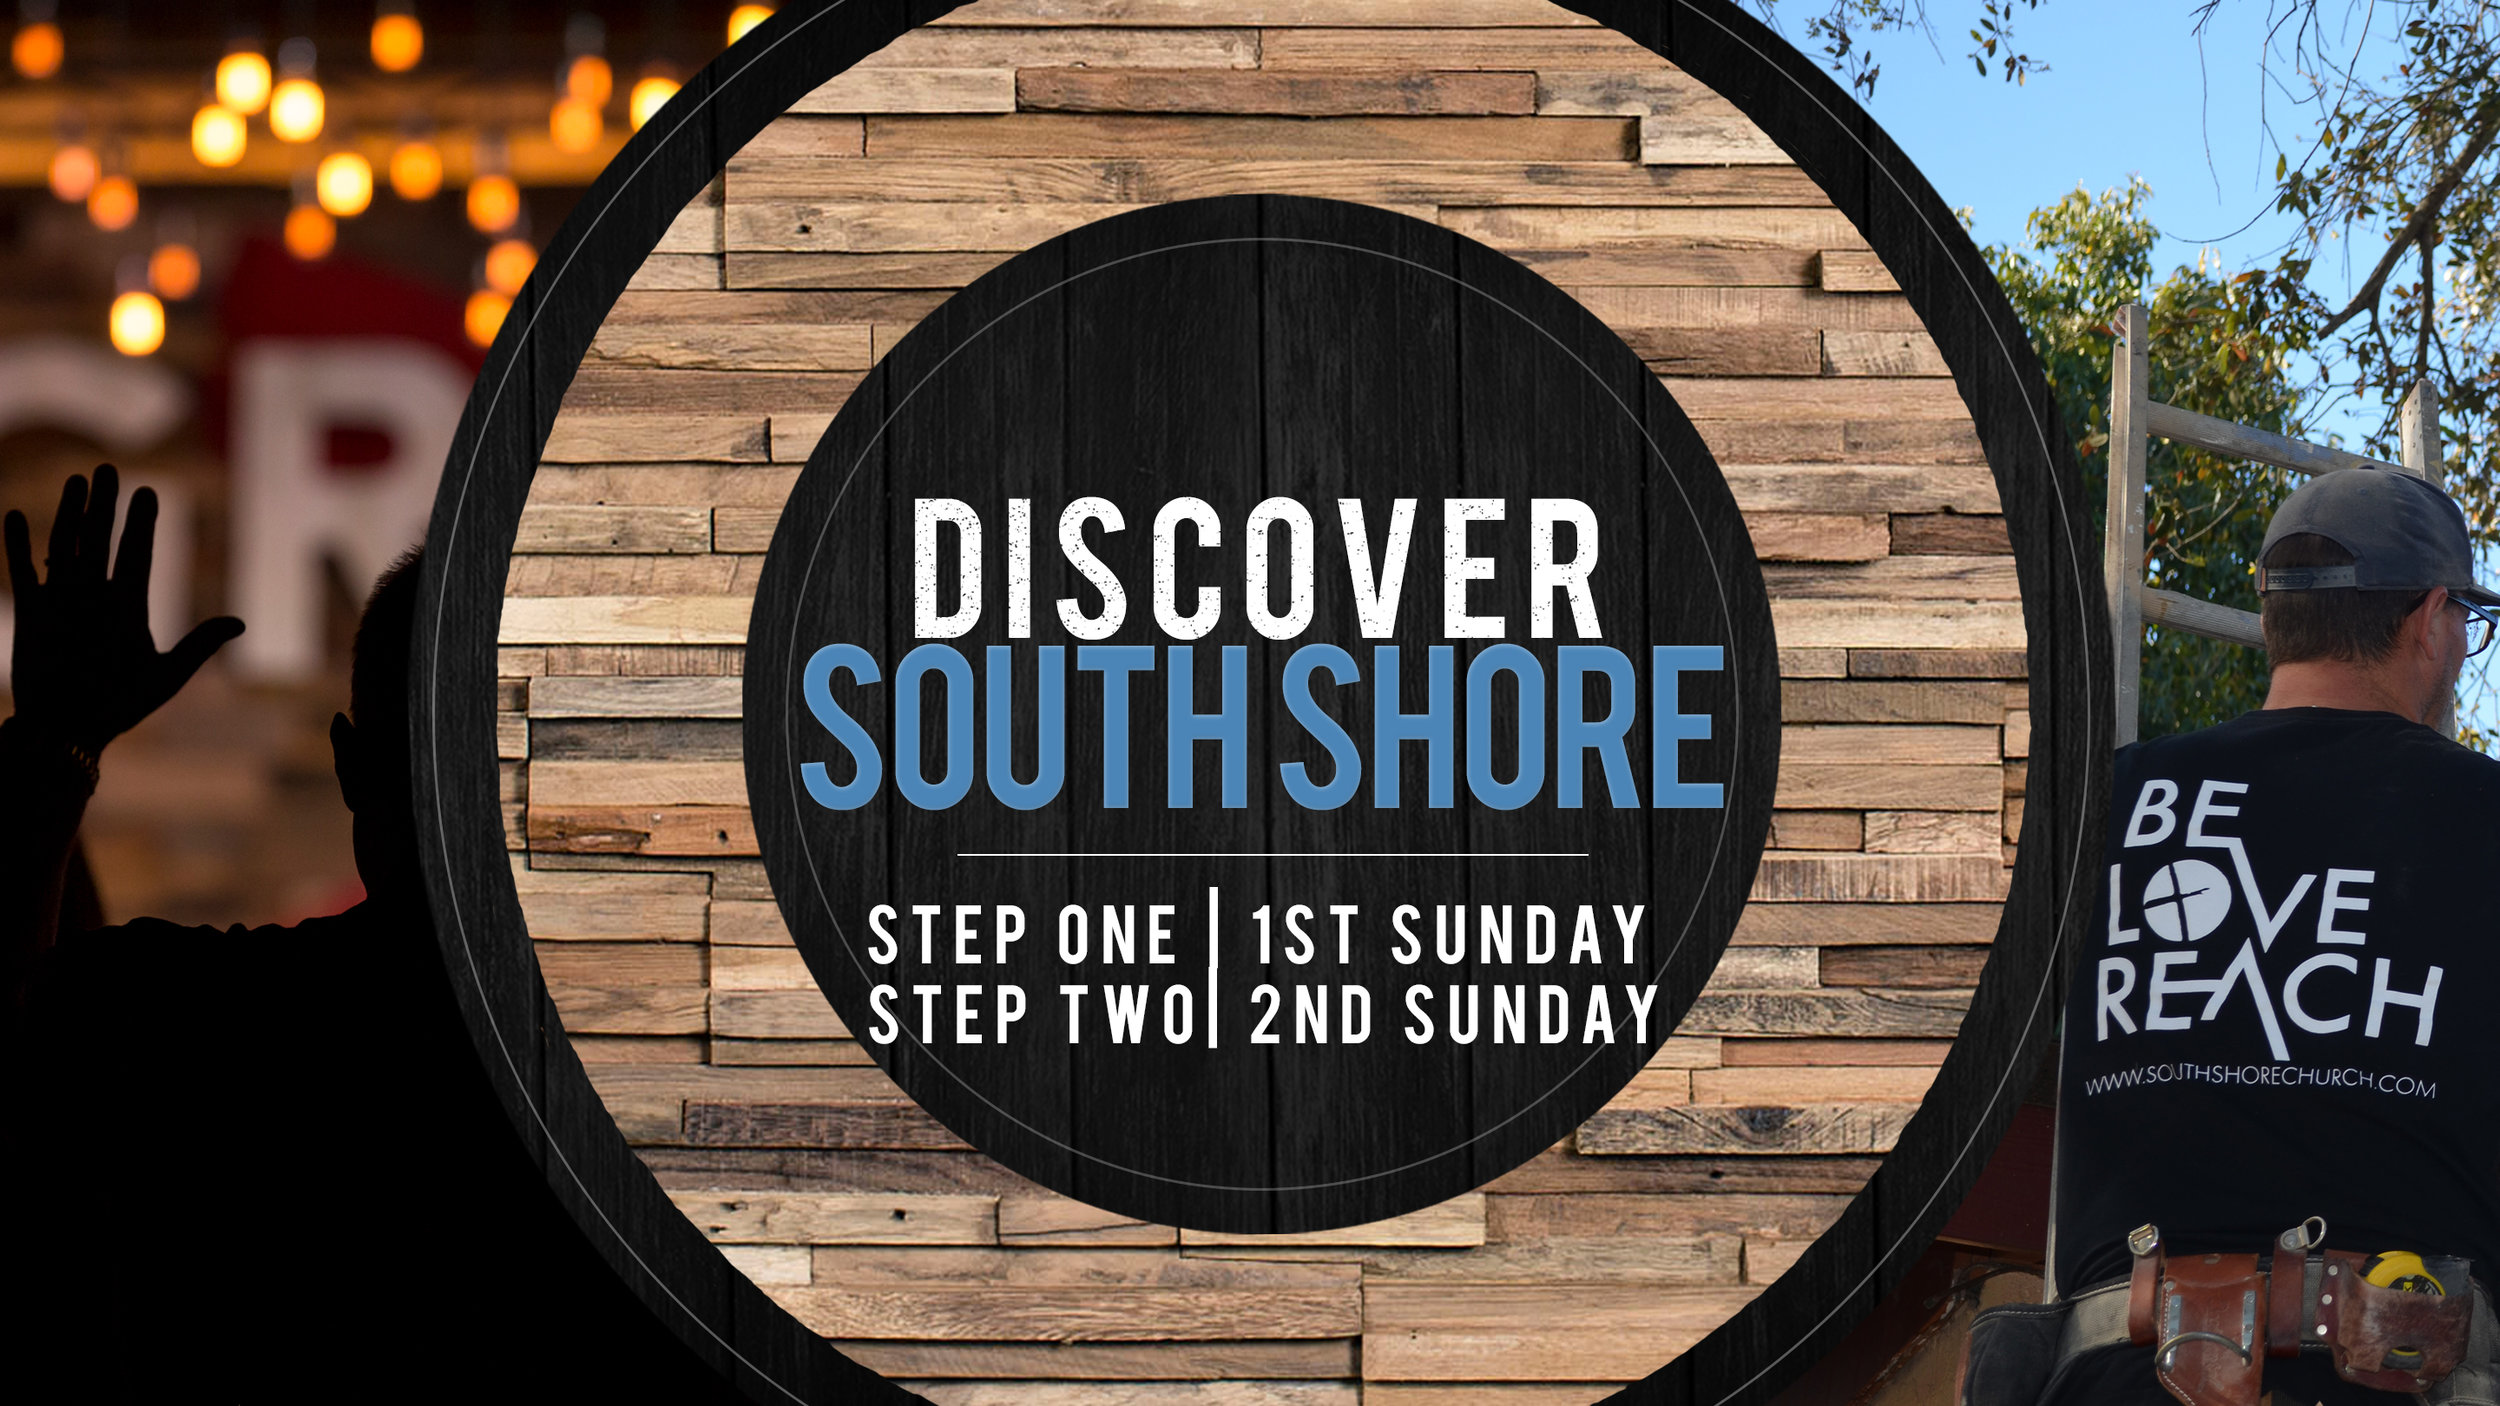 DiscoverSouthShore (1).jpg